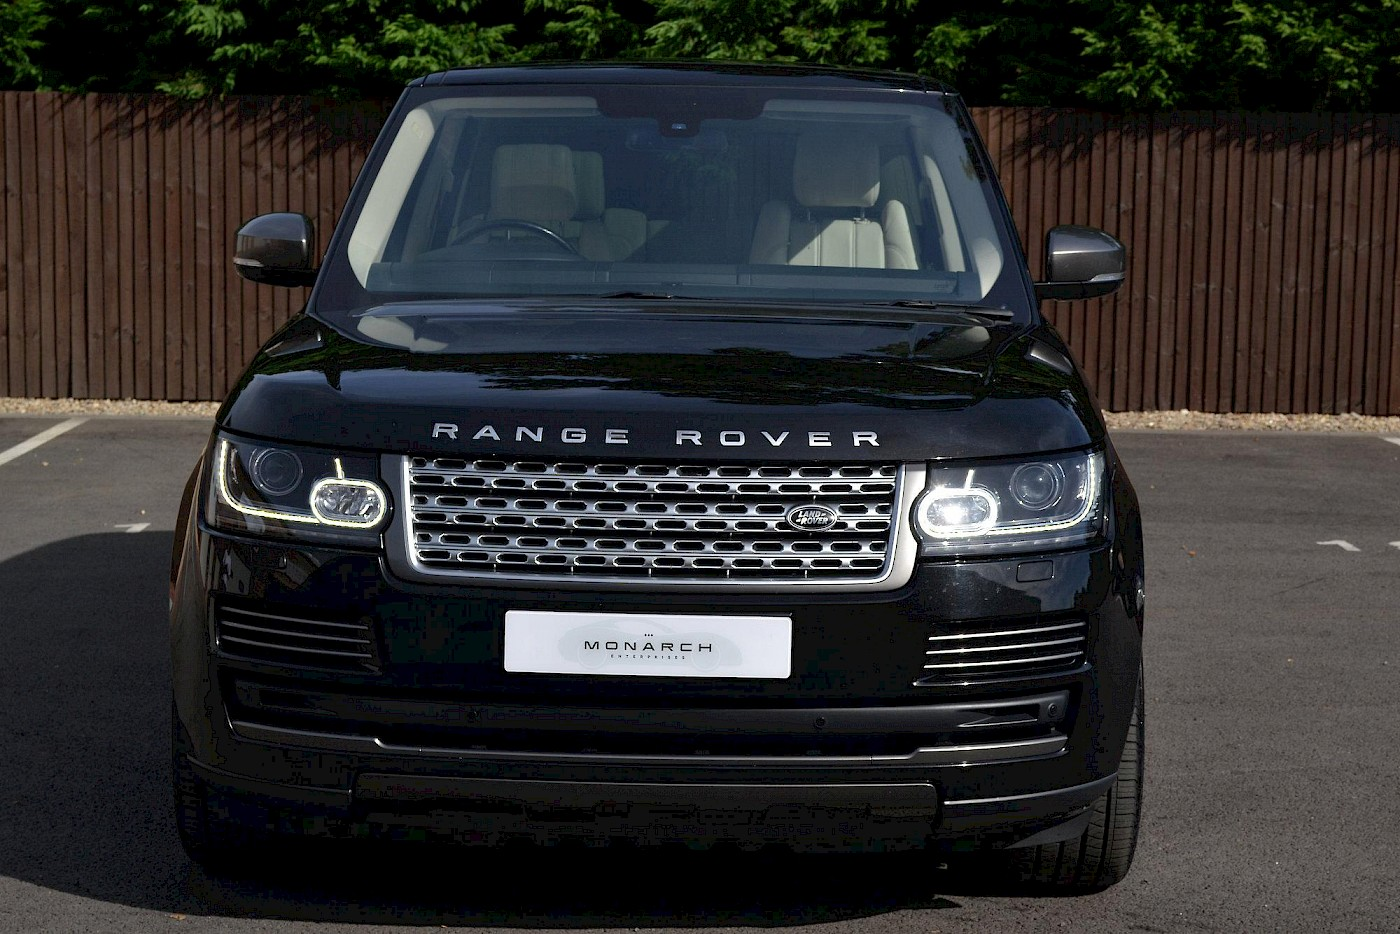 2013/13 Land Rover Range Rover Vogue 4.4 3